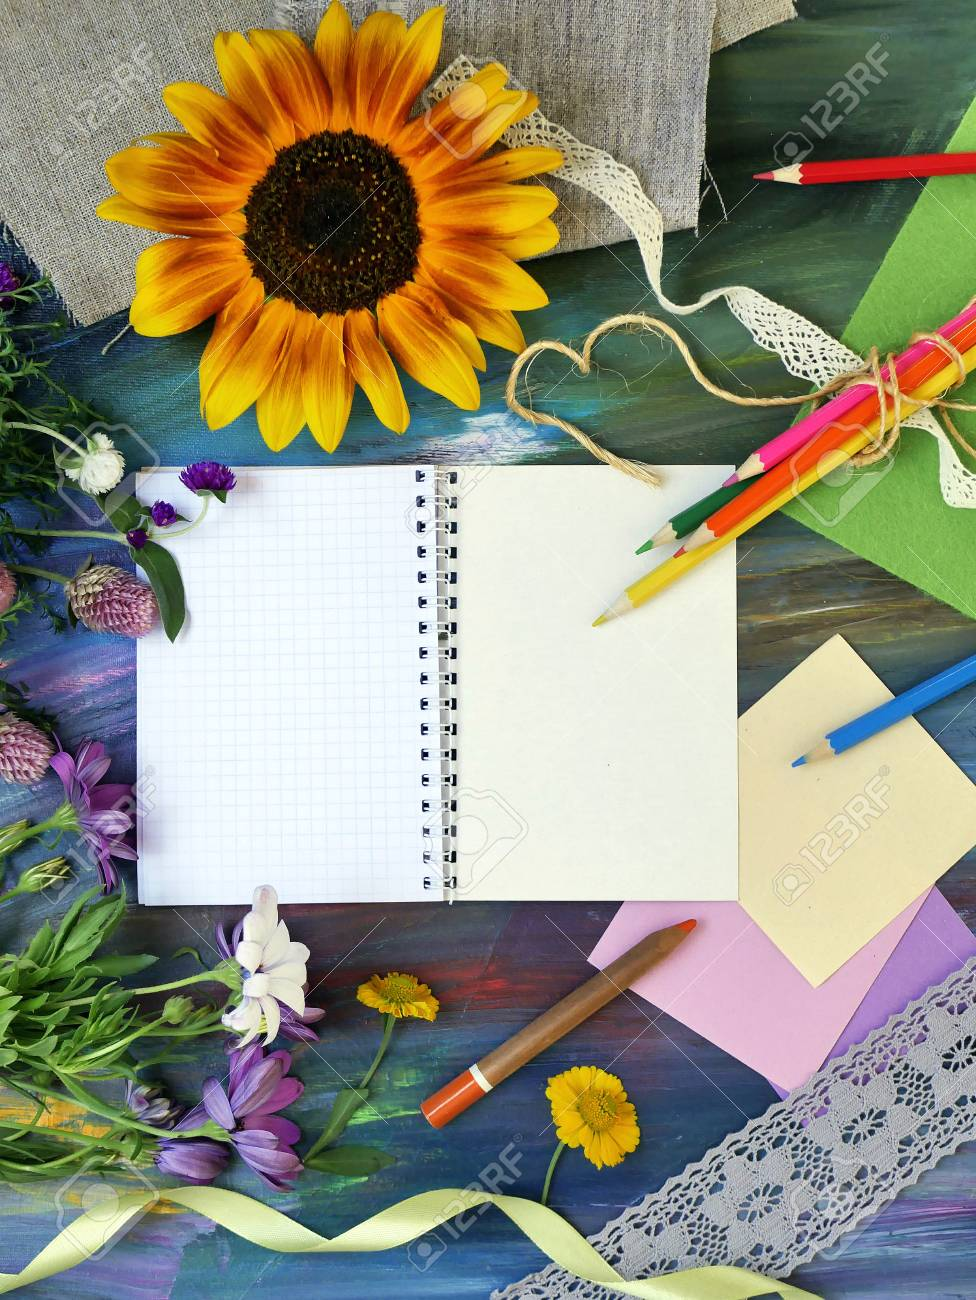 Bright Decorative Composition Of Art Materials Notepad And Flowers